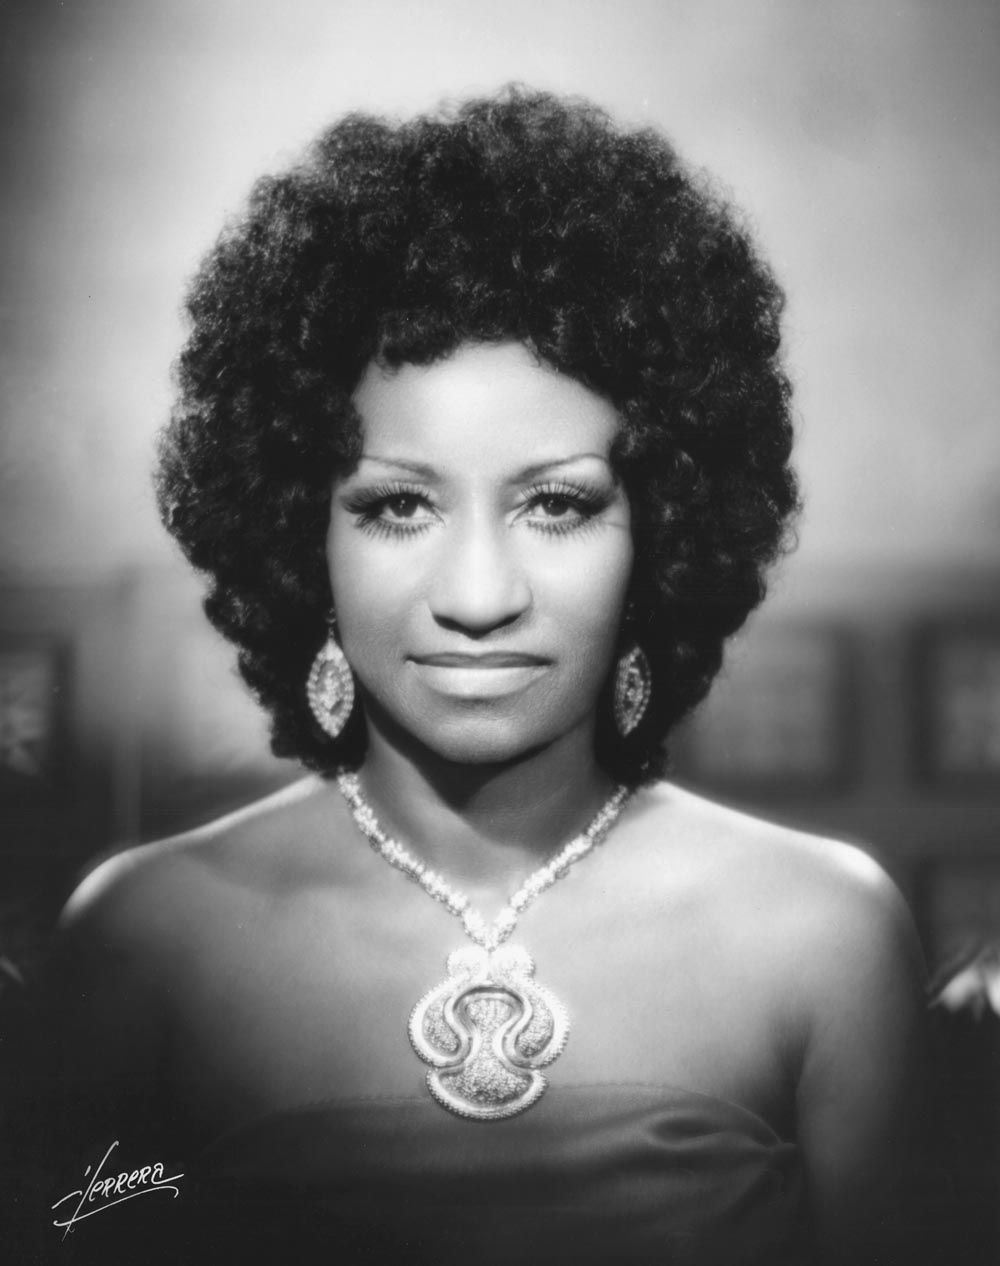 about celia cruz The voice, charisma and talent of celia cruz have created one of the most impressive careers in all of music, with more than 70 albums and countless awards.